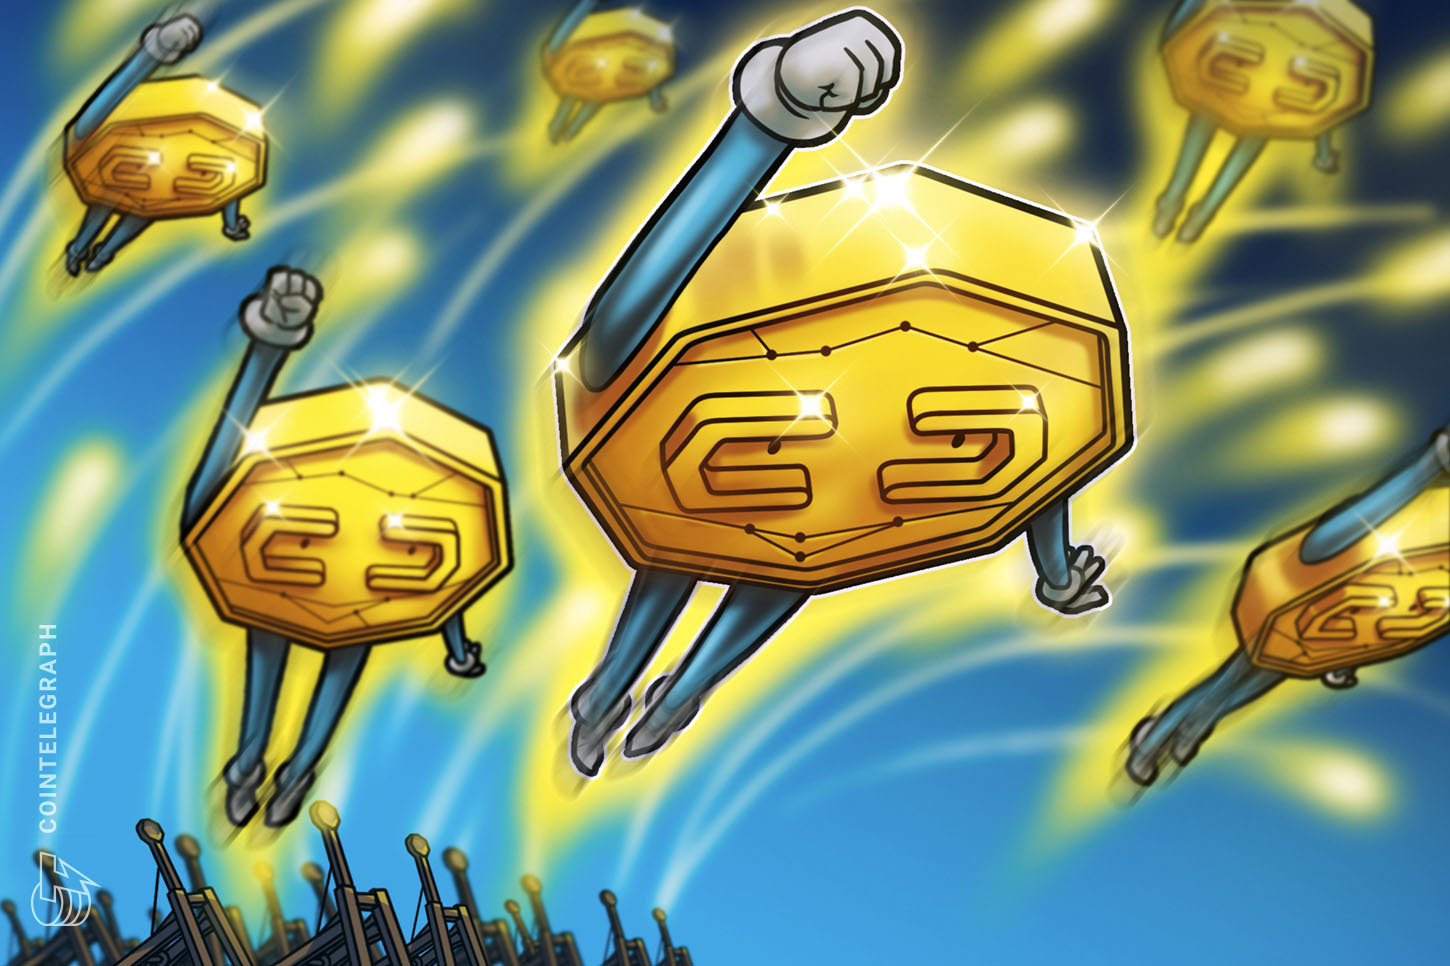 Crypto transactions surge 706% in Asia as institutional adoption grows — Chainalysis